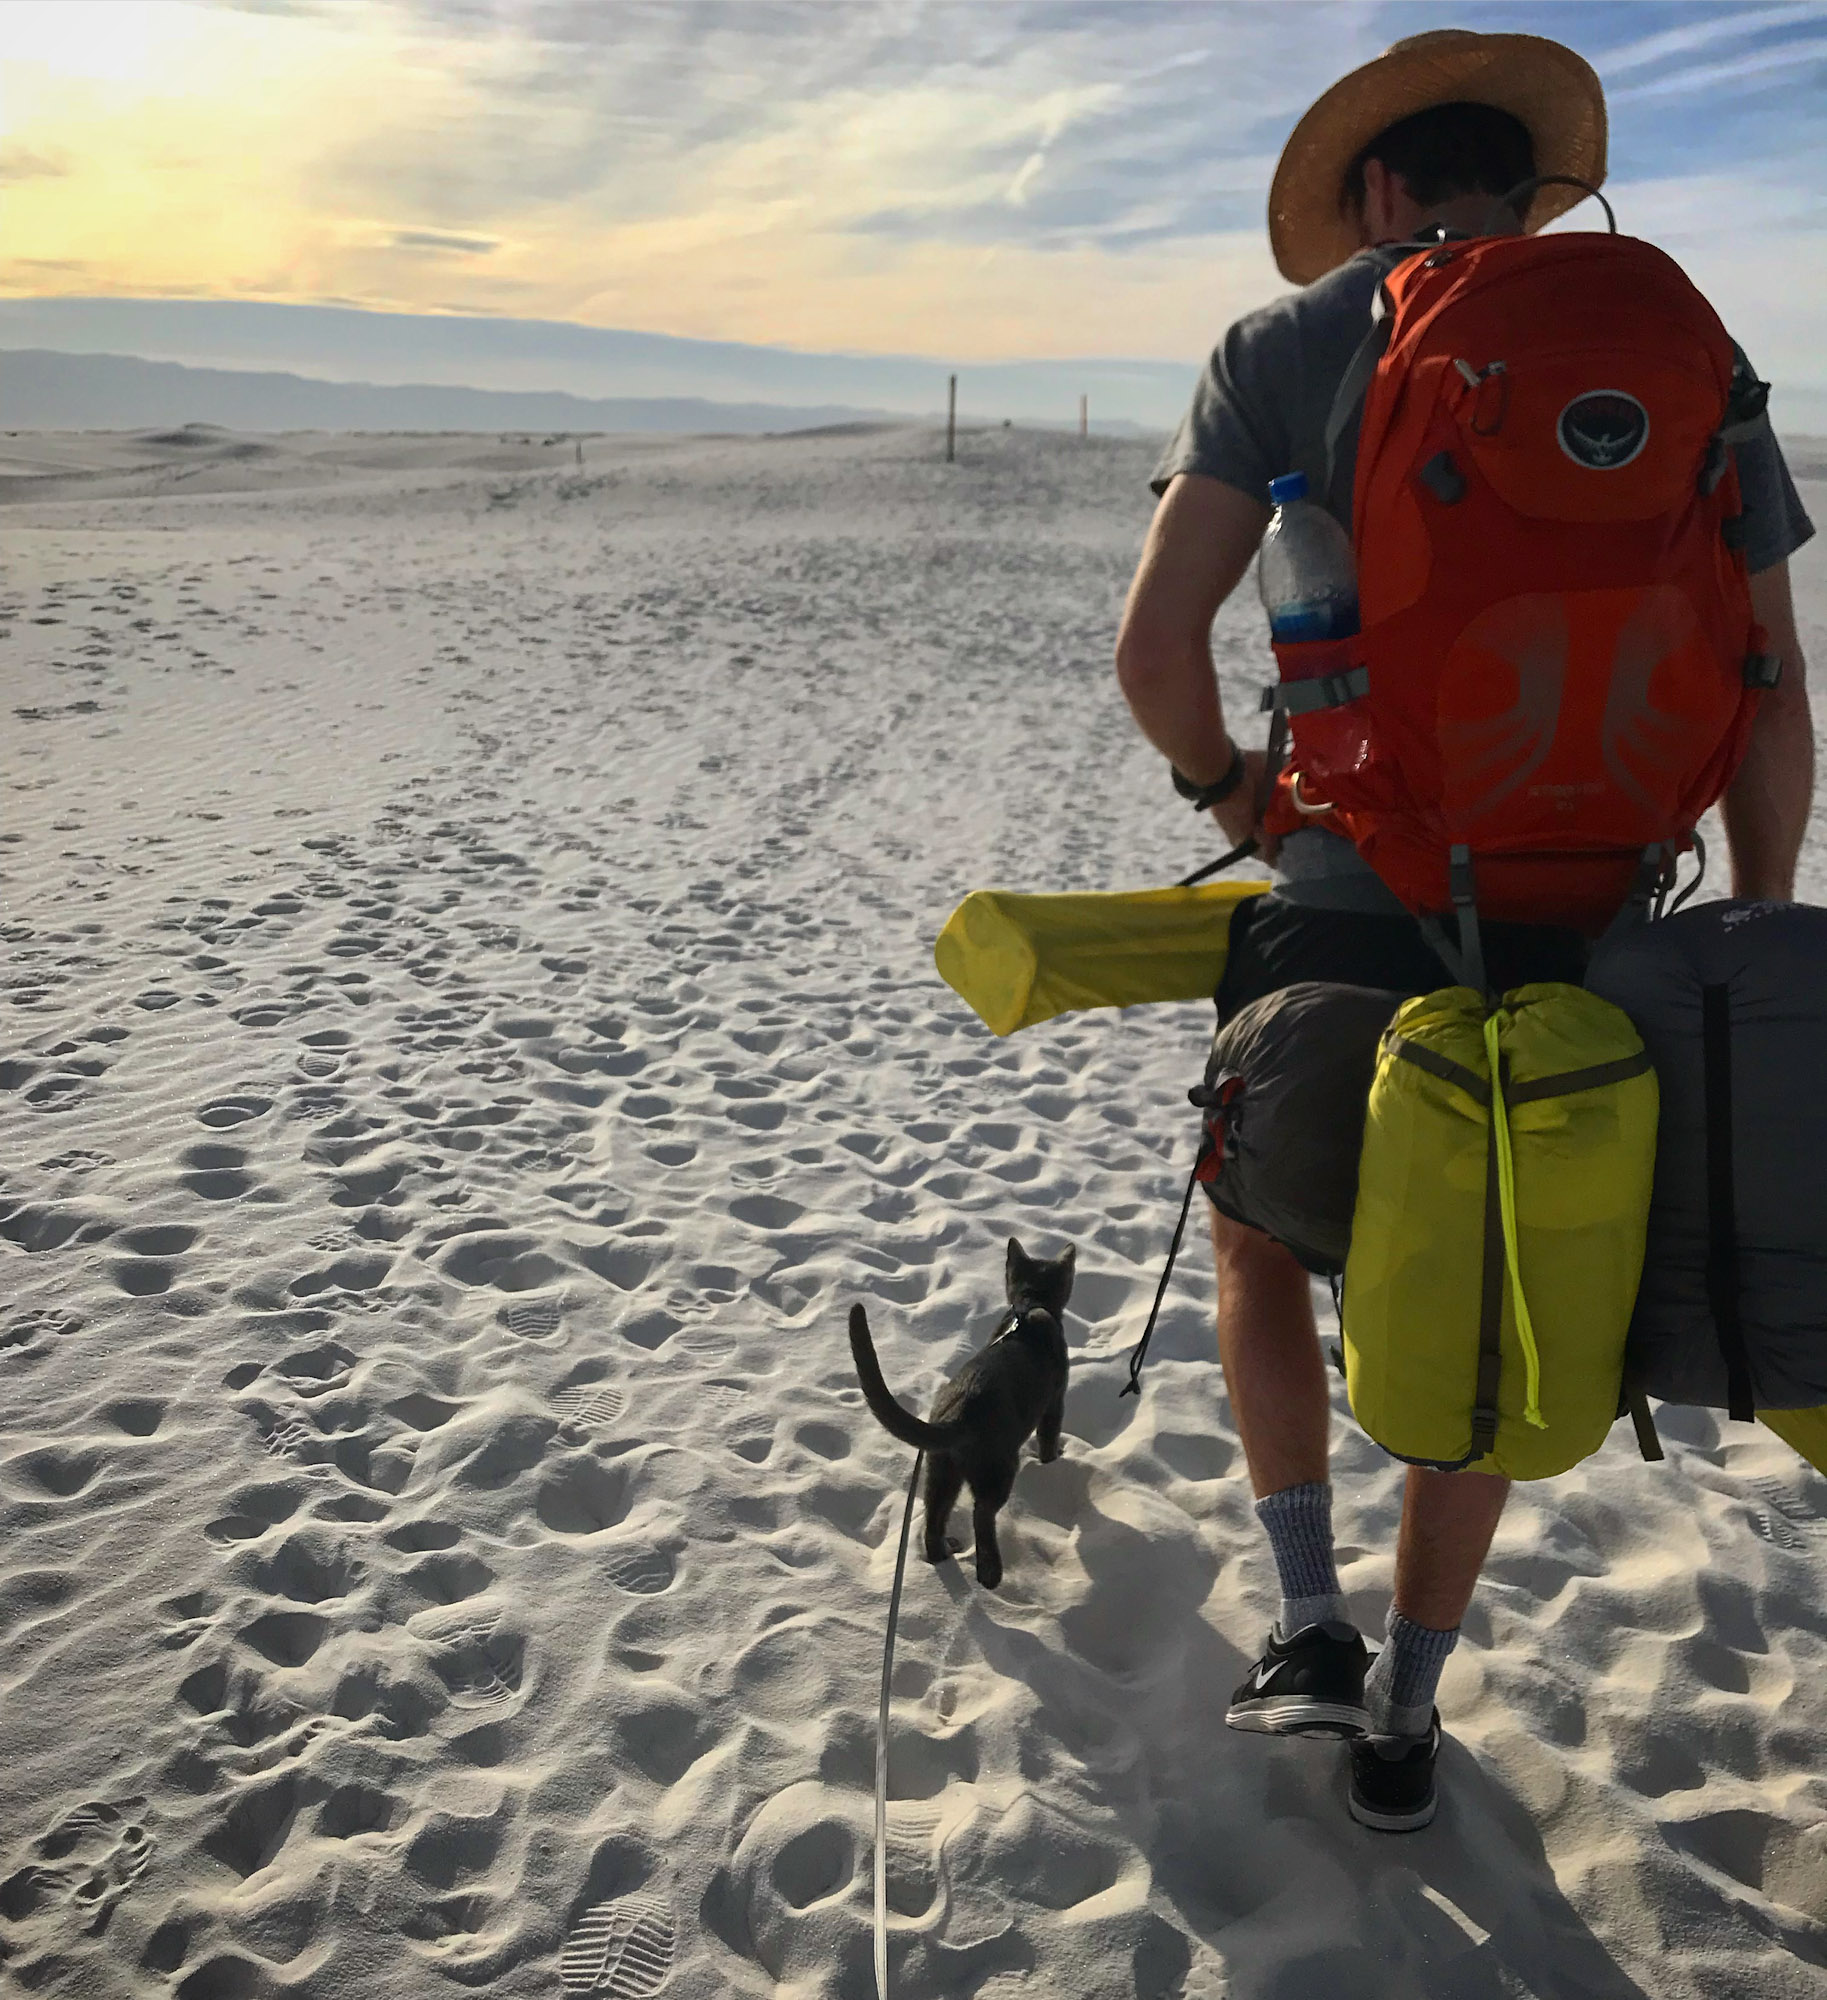 cat on harness walks through sand with owner